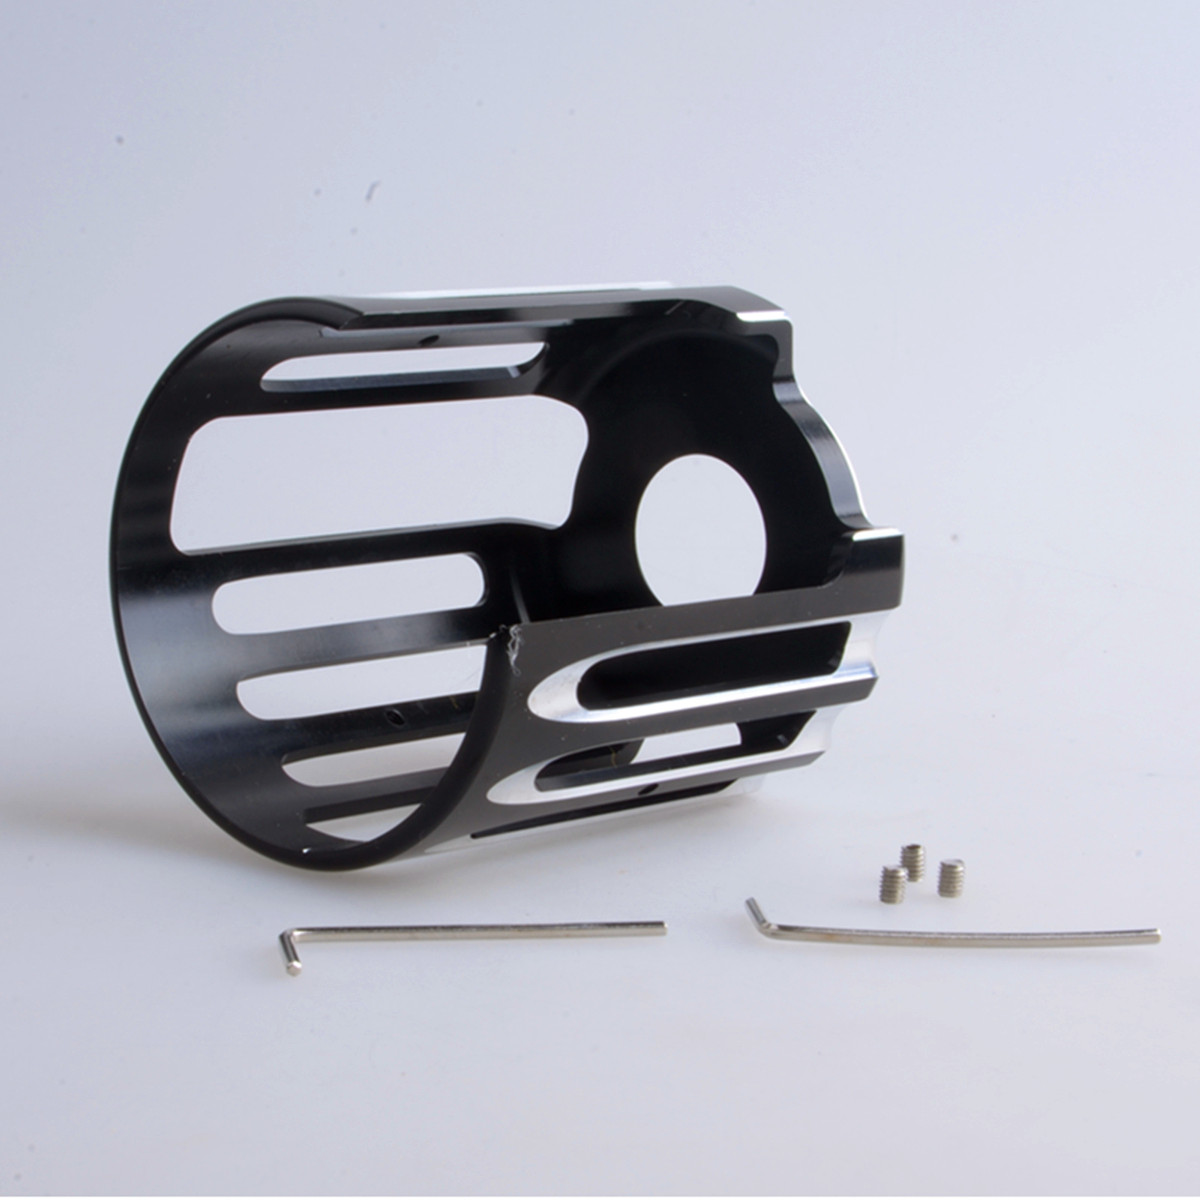 High Quality Motorcycle Oil Filter Cover Trim For Harley-Davidson Twin Cam Models CNC Aluminum Deep Cut Chrome & Black